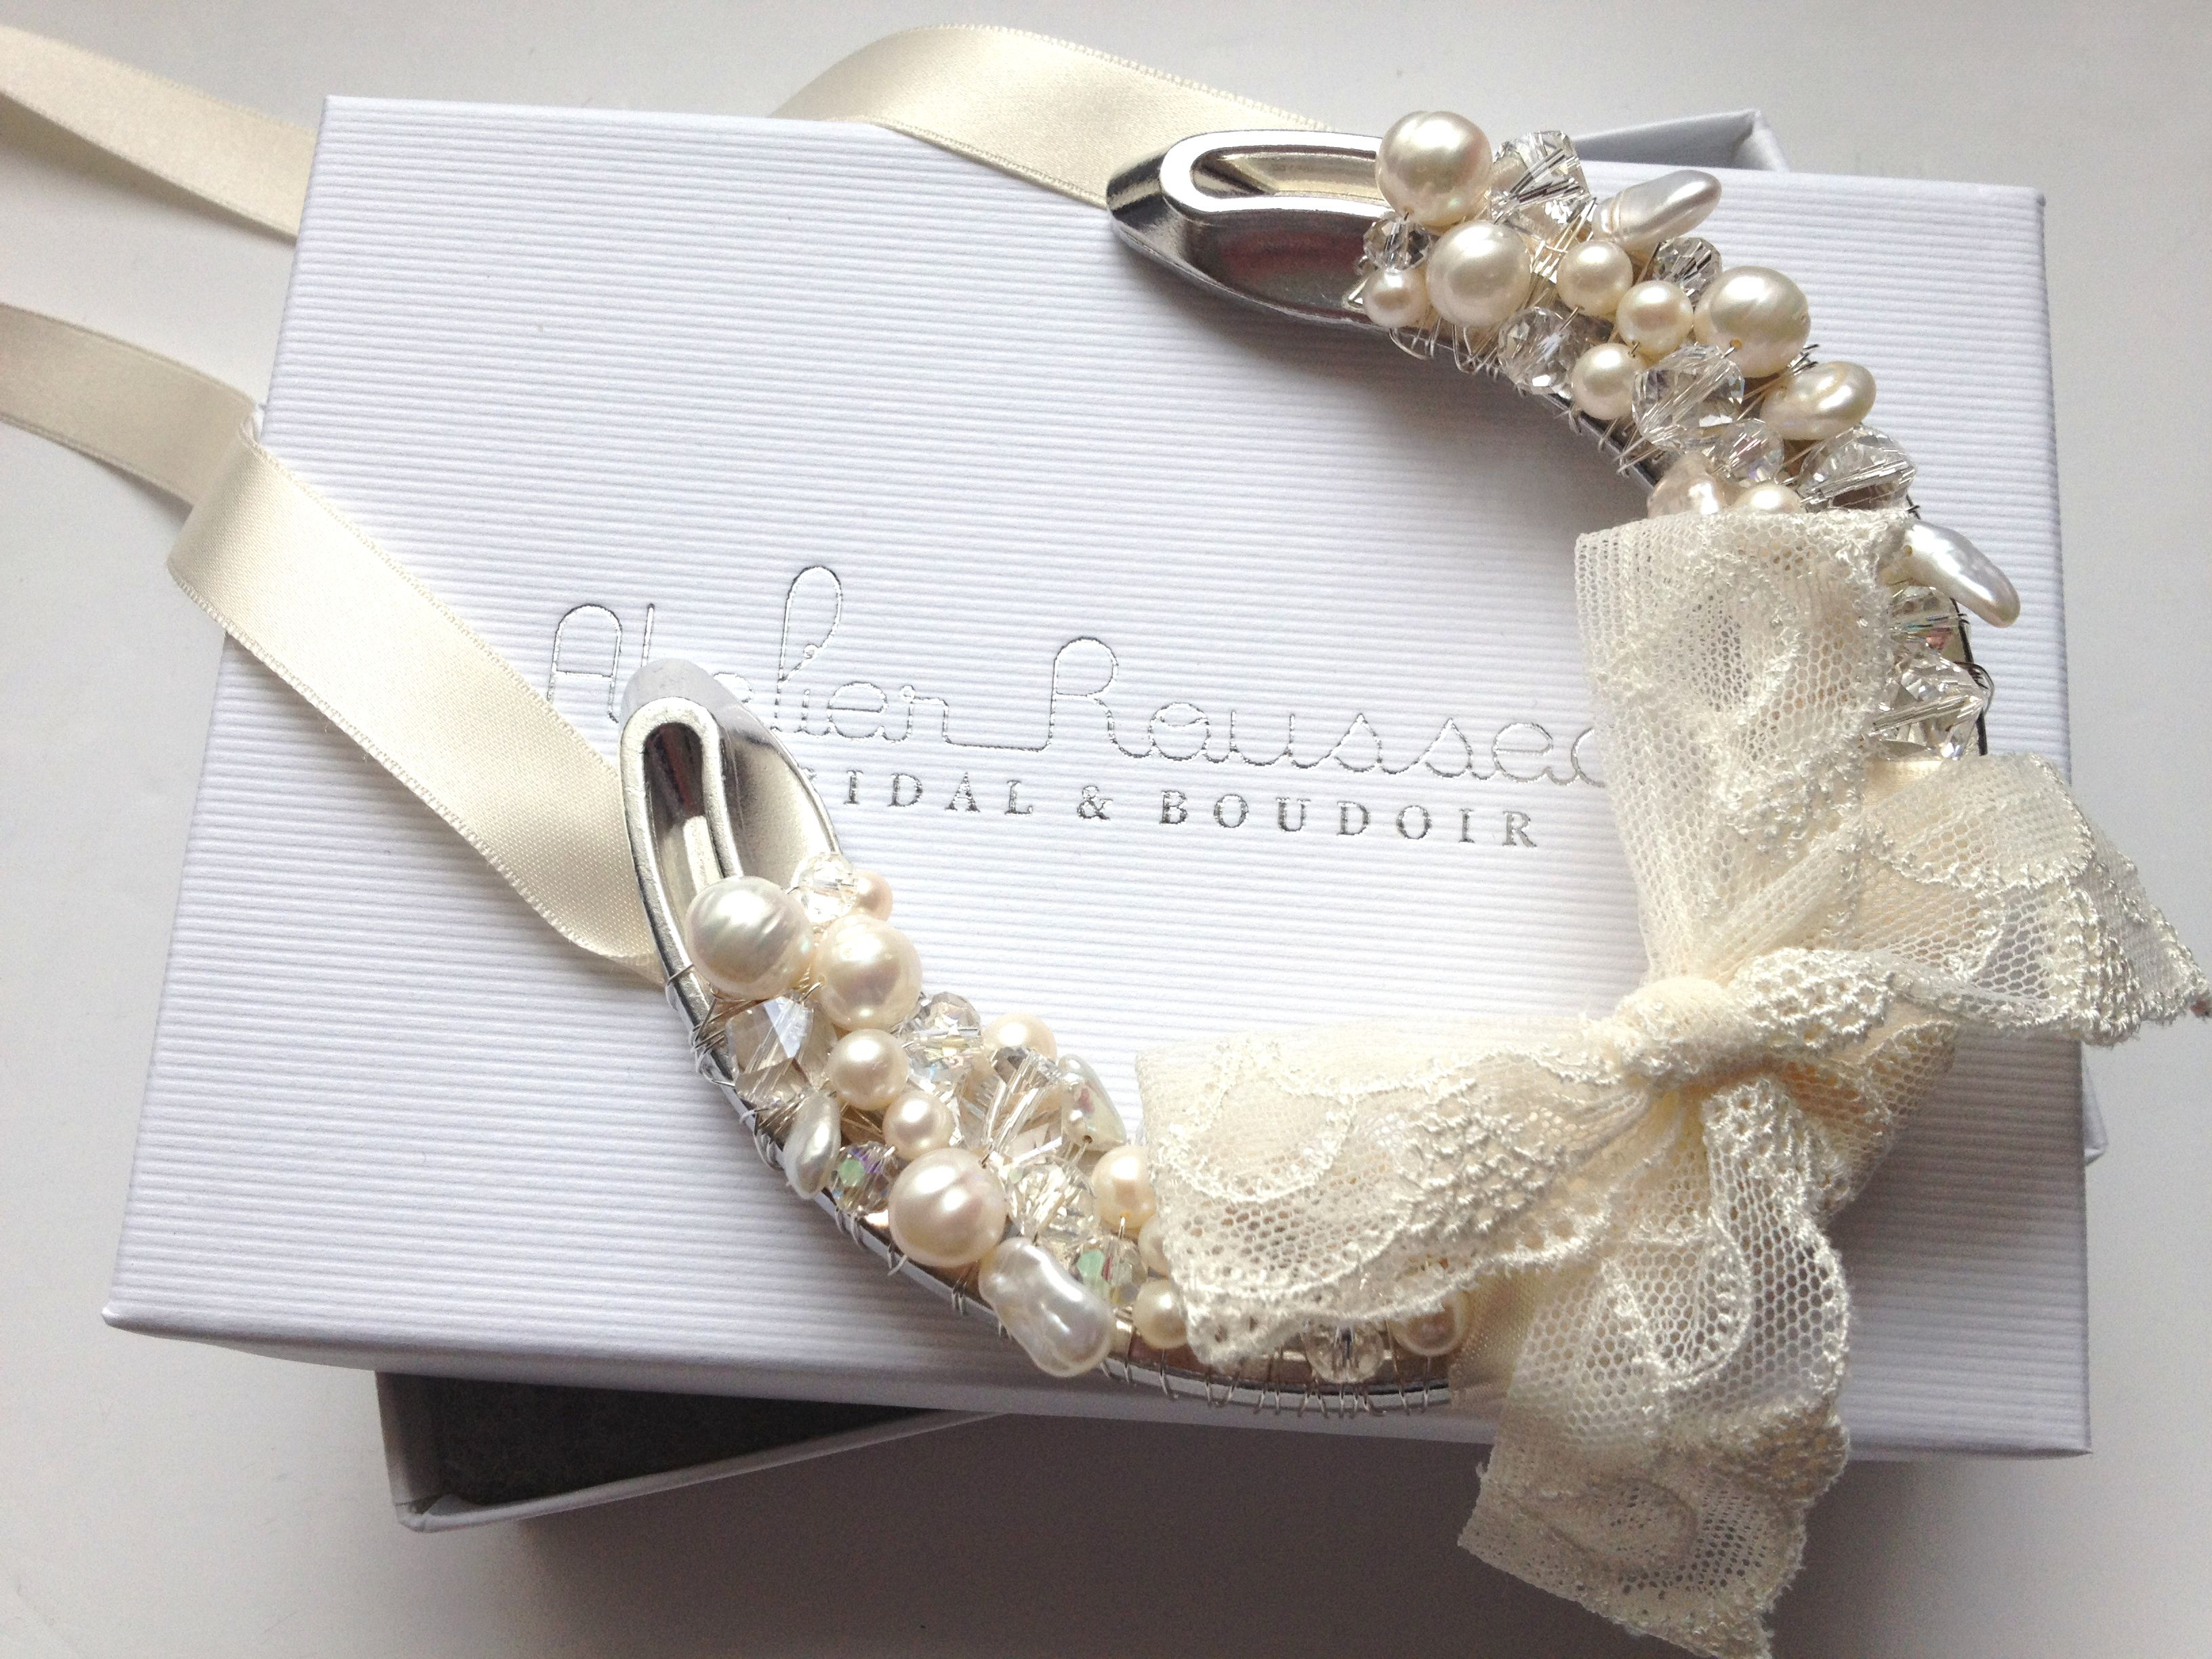 best 25 bridal horseshoe ideas only on pinterest lucky wedding horseshoe by atelier rousseau www atelier rousseau com